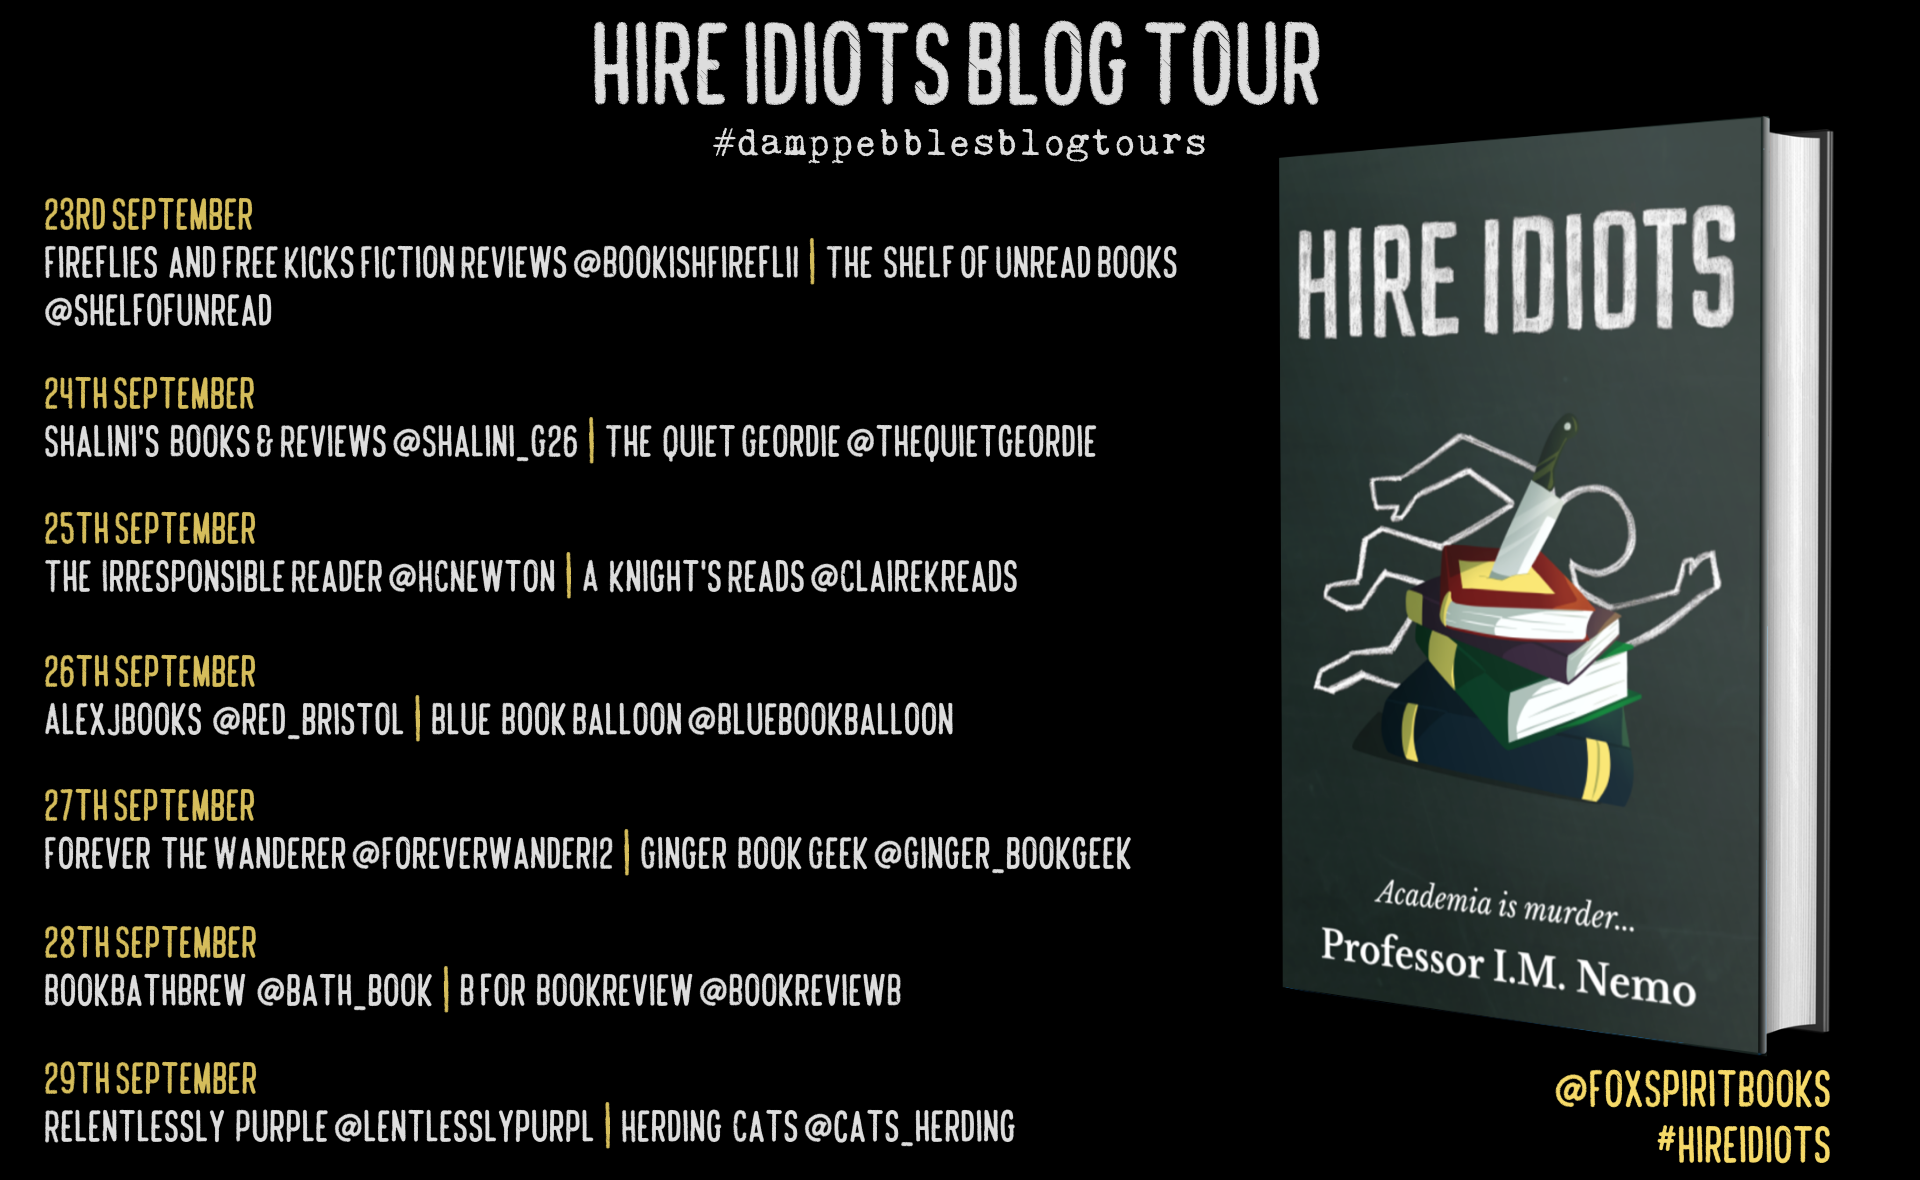 Hire Idiots Blog Tour Poster